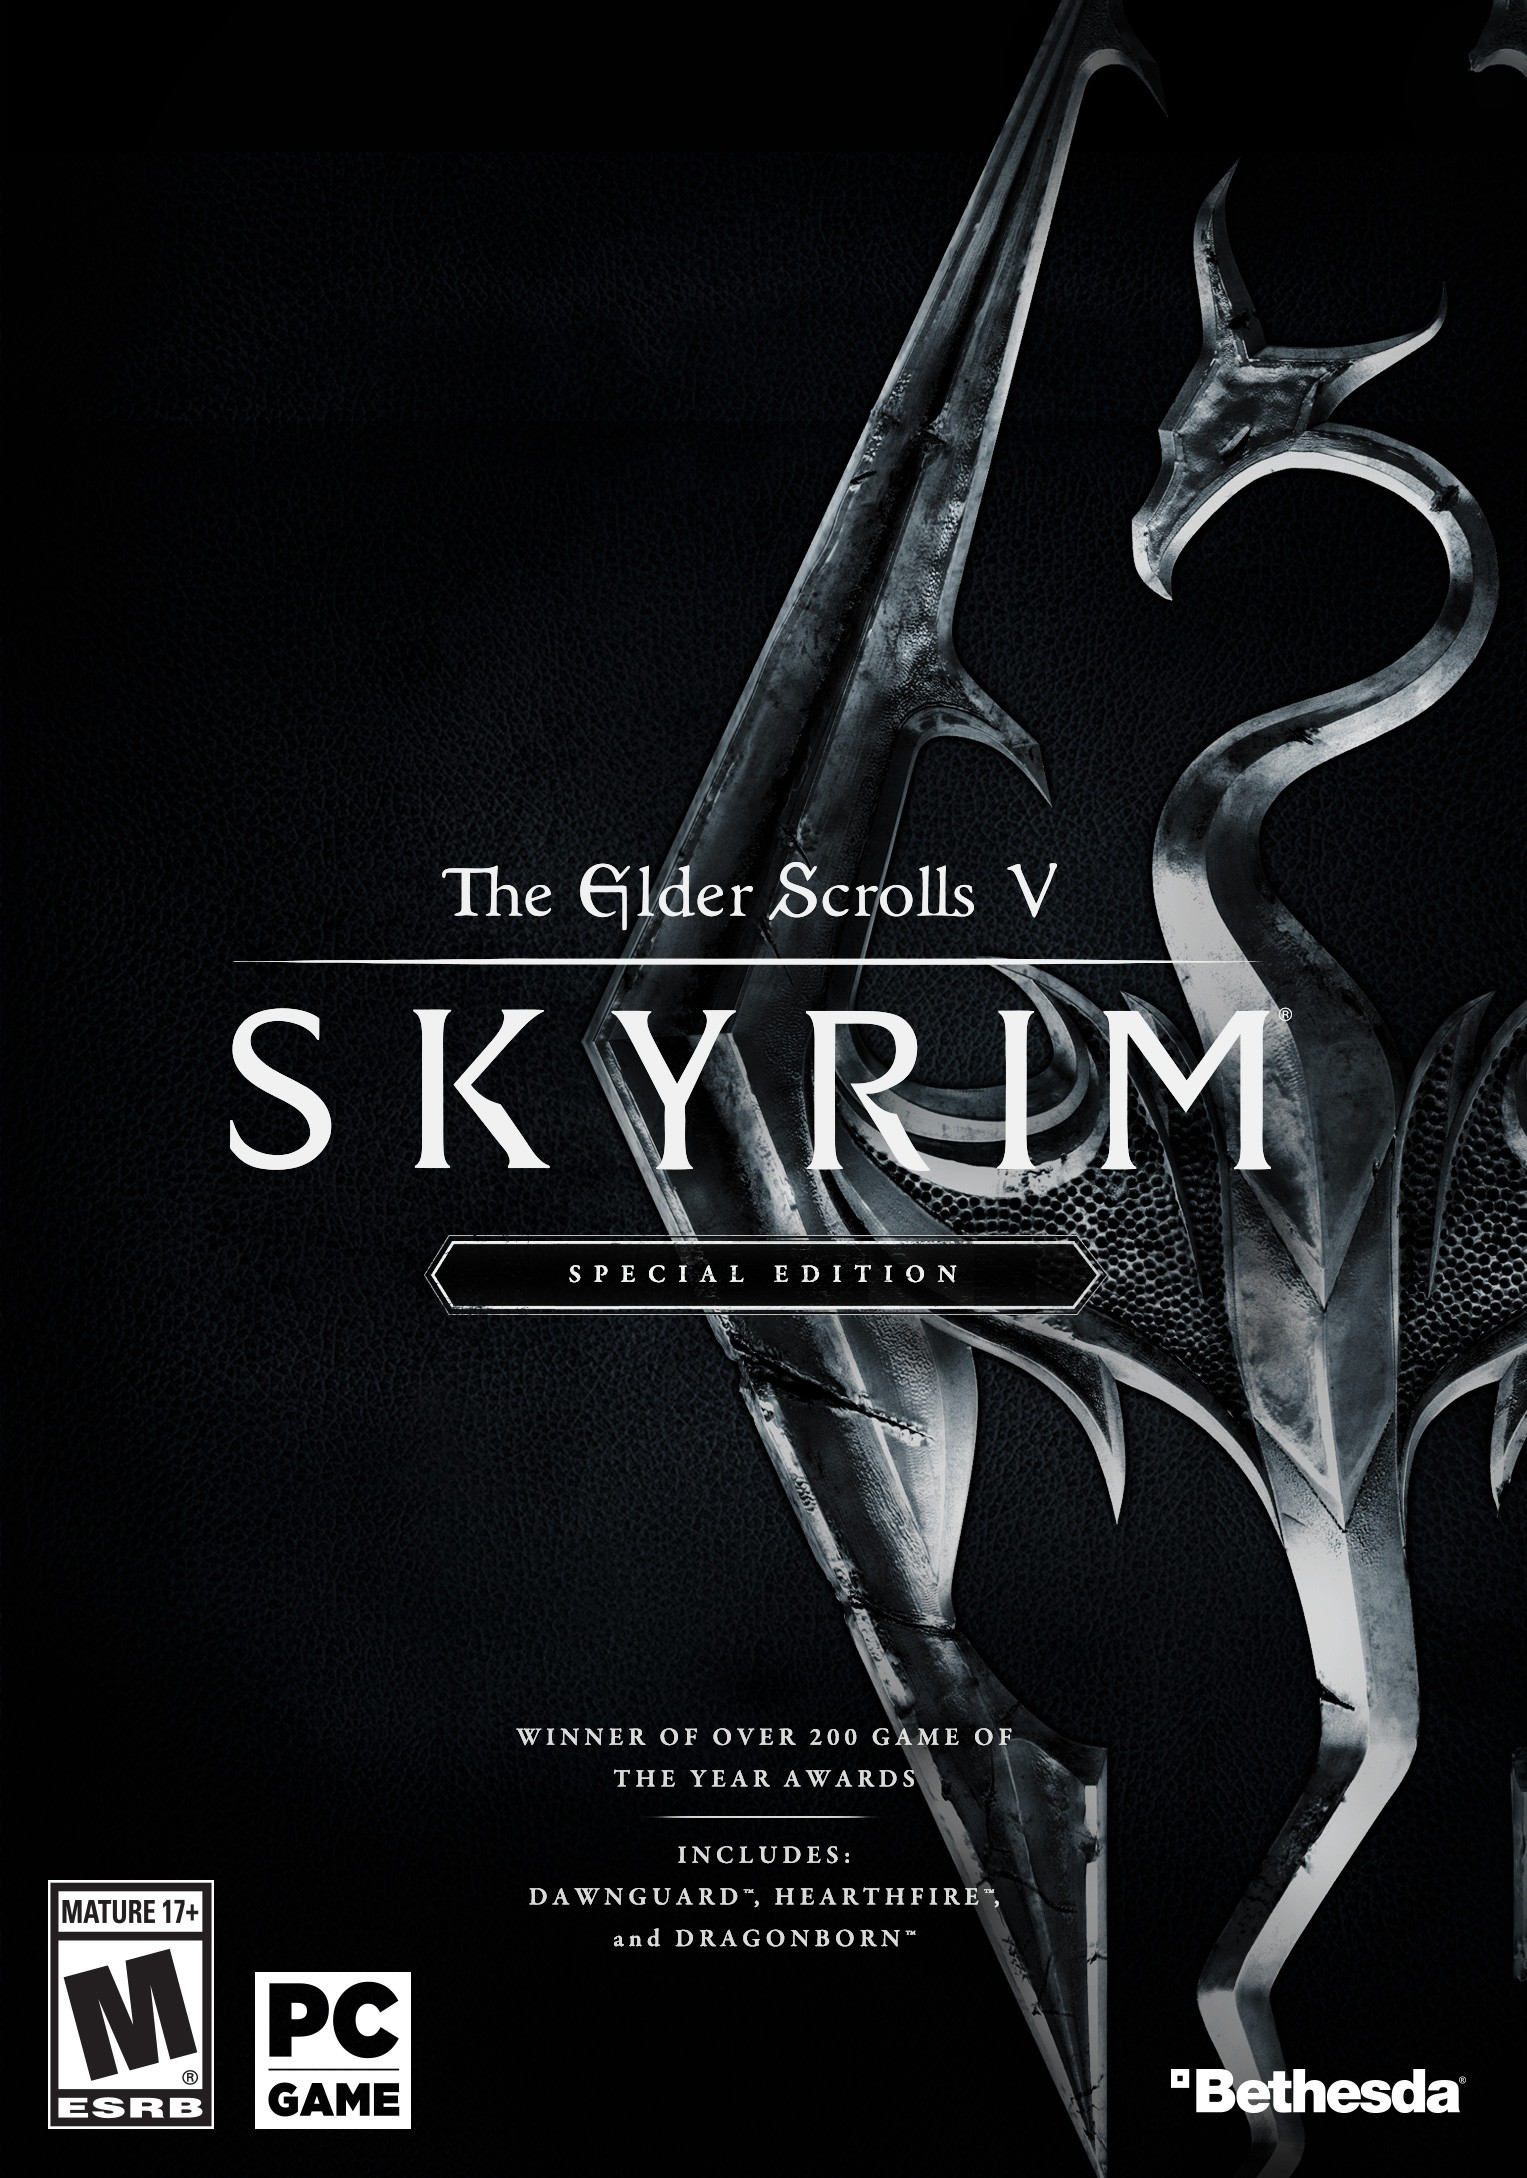 لعبة The Elder Scrolls Skyrim Special Edition ريباك فريق FitGirl